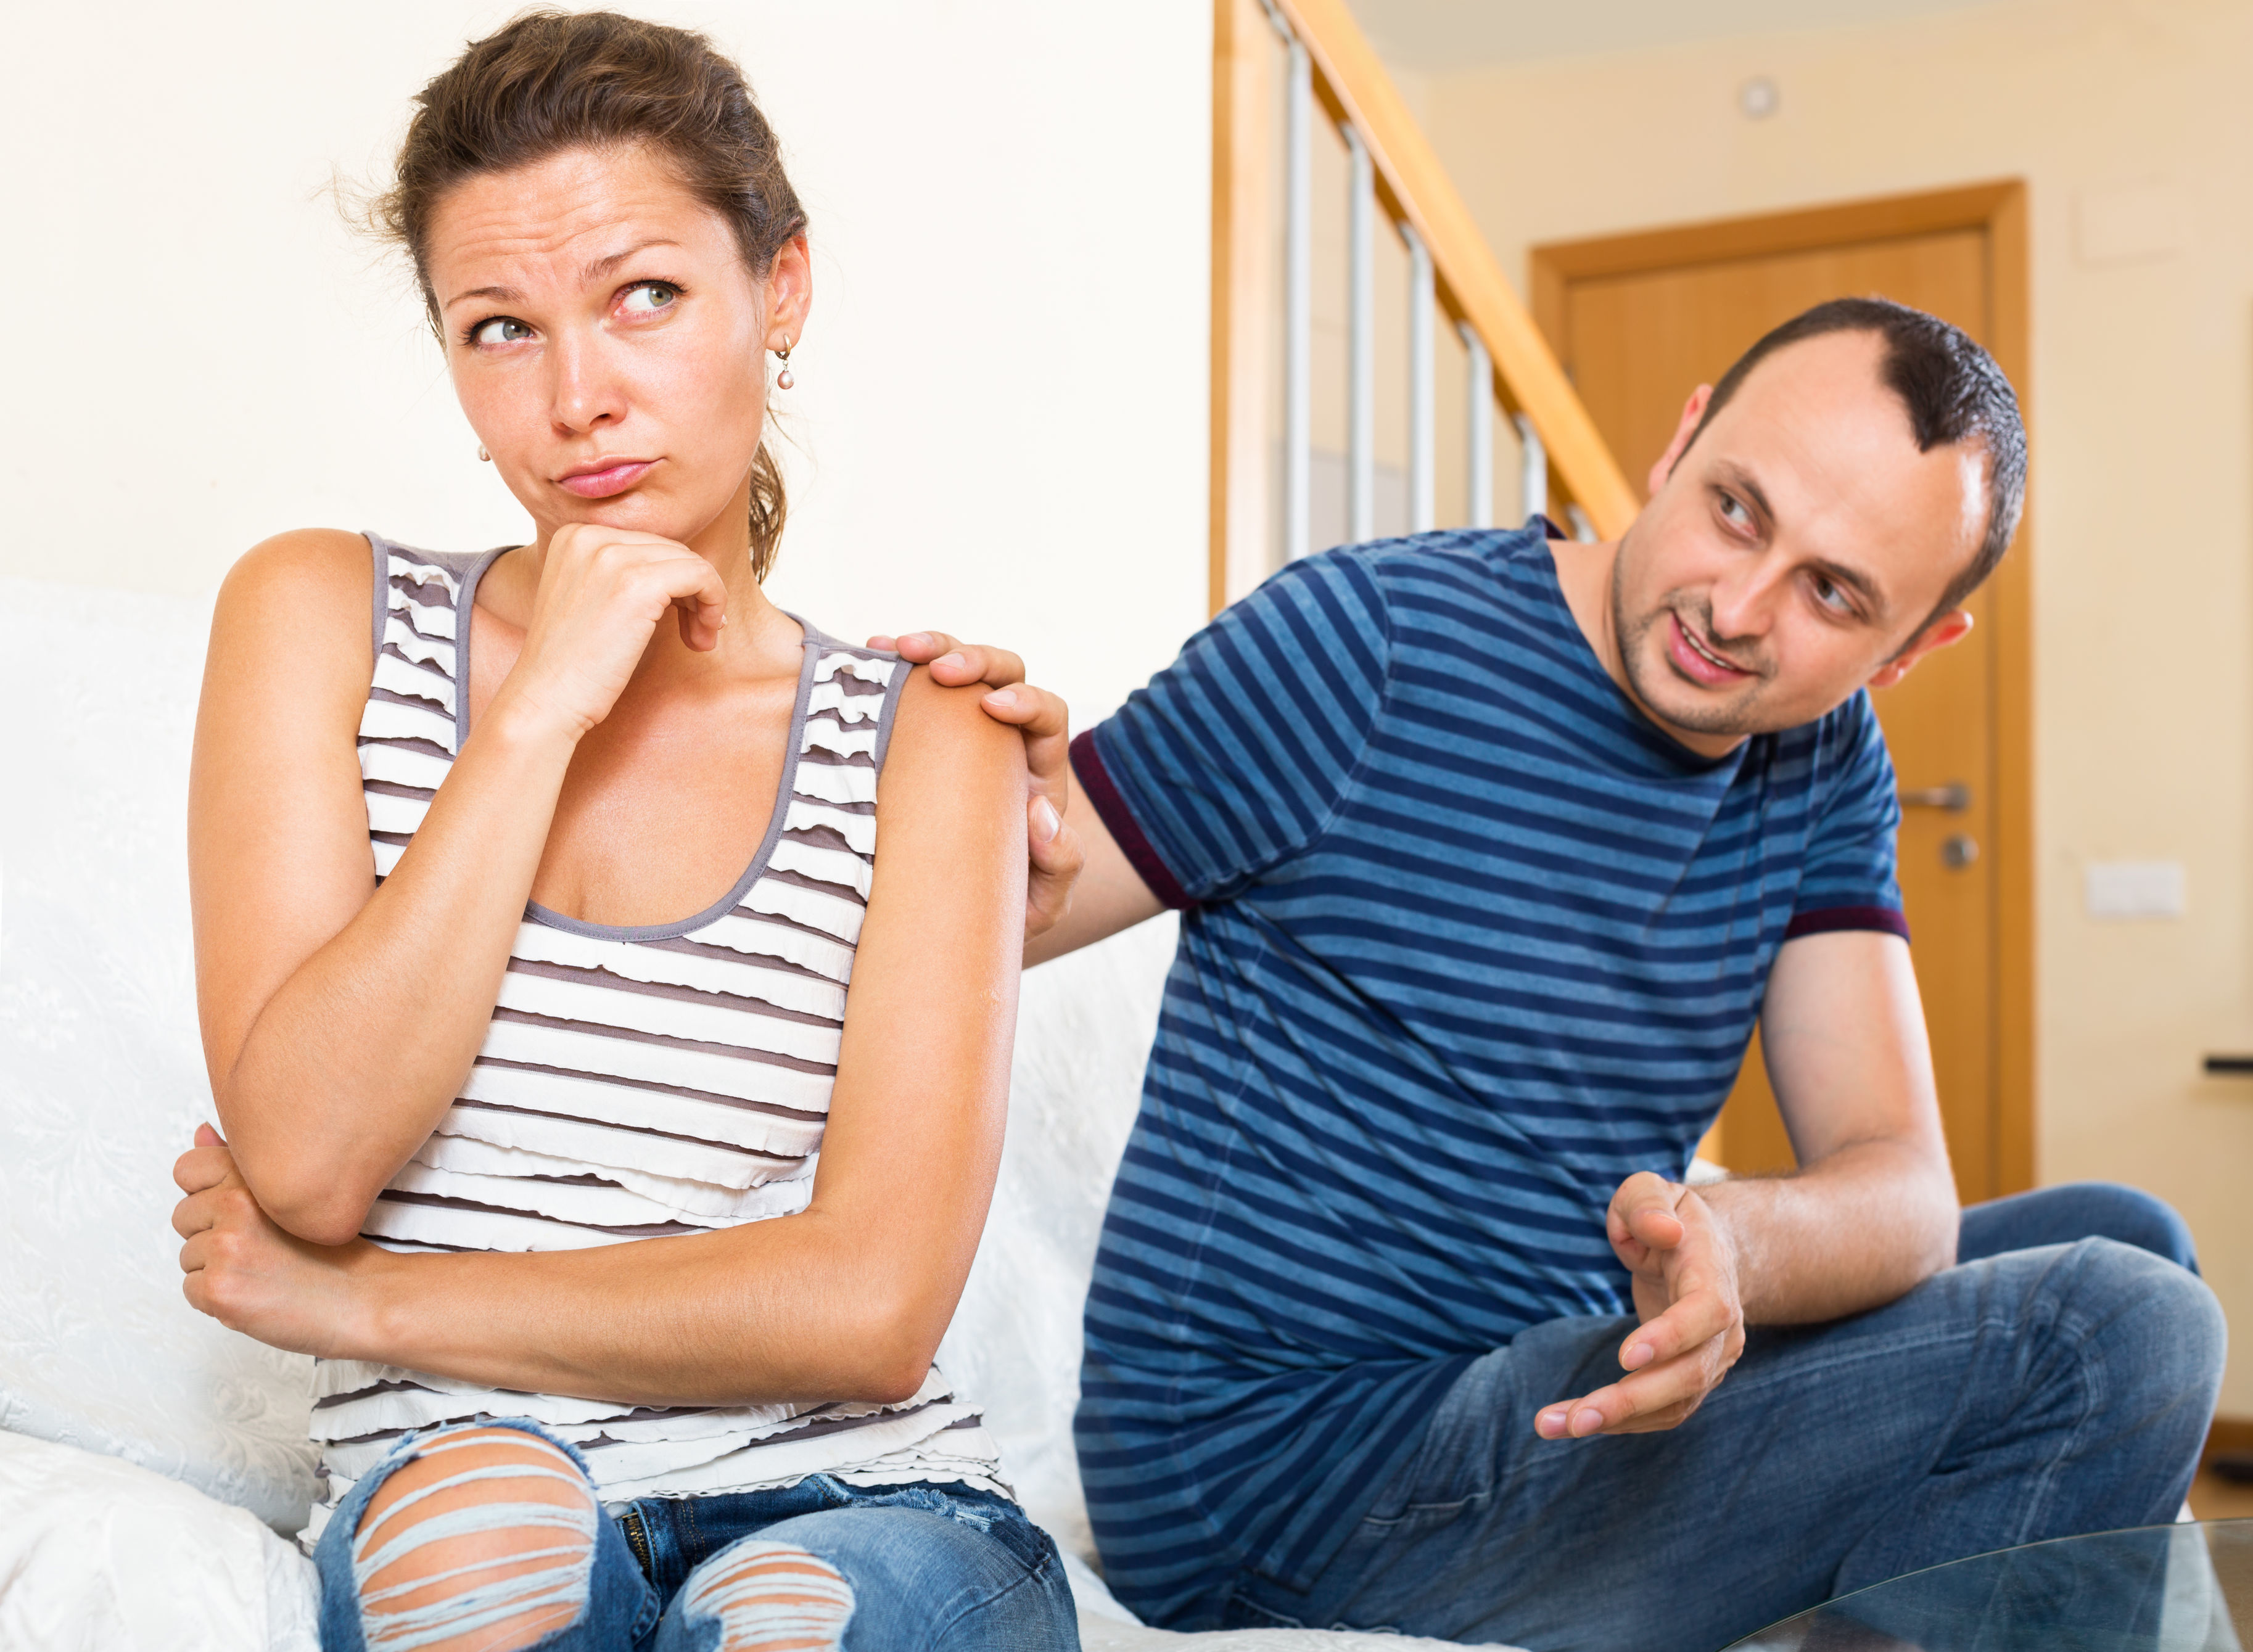 A woman looks away from her husband with a frustrated expression while he attempts to get her attention